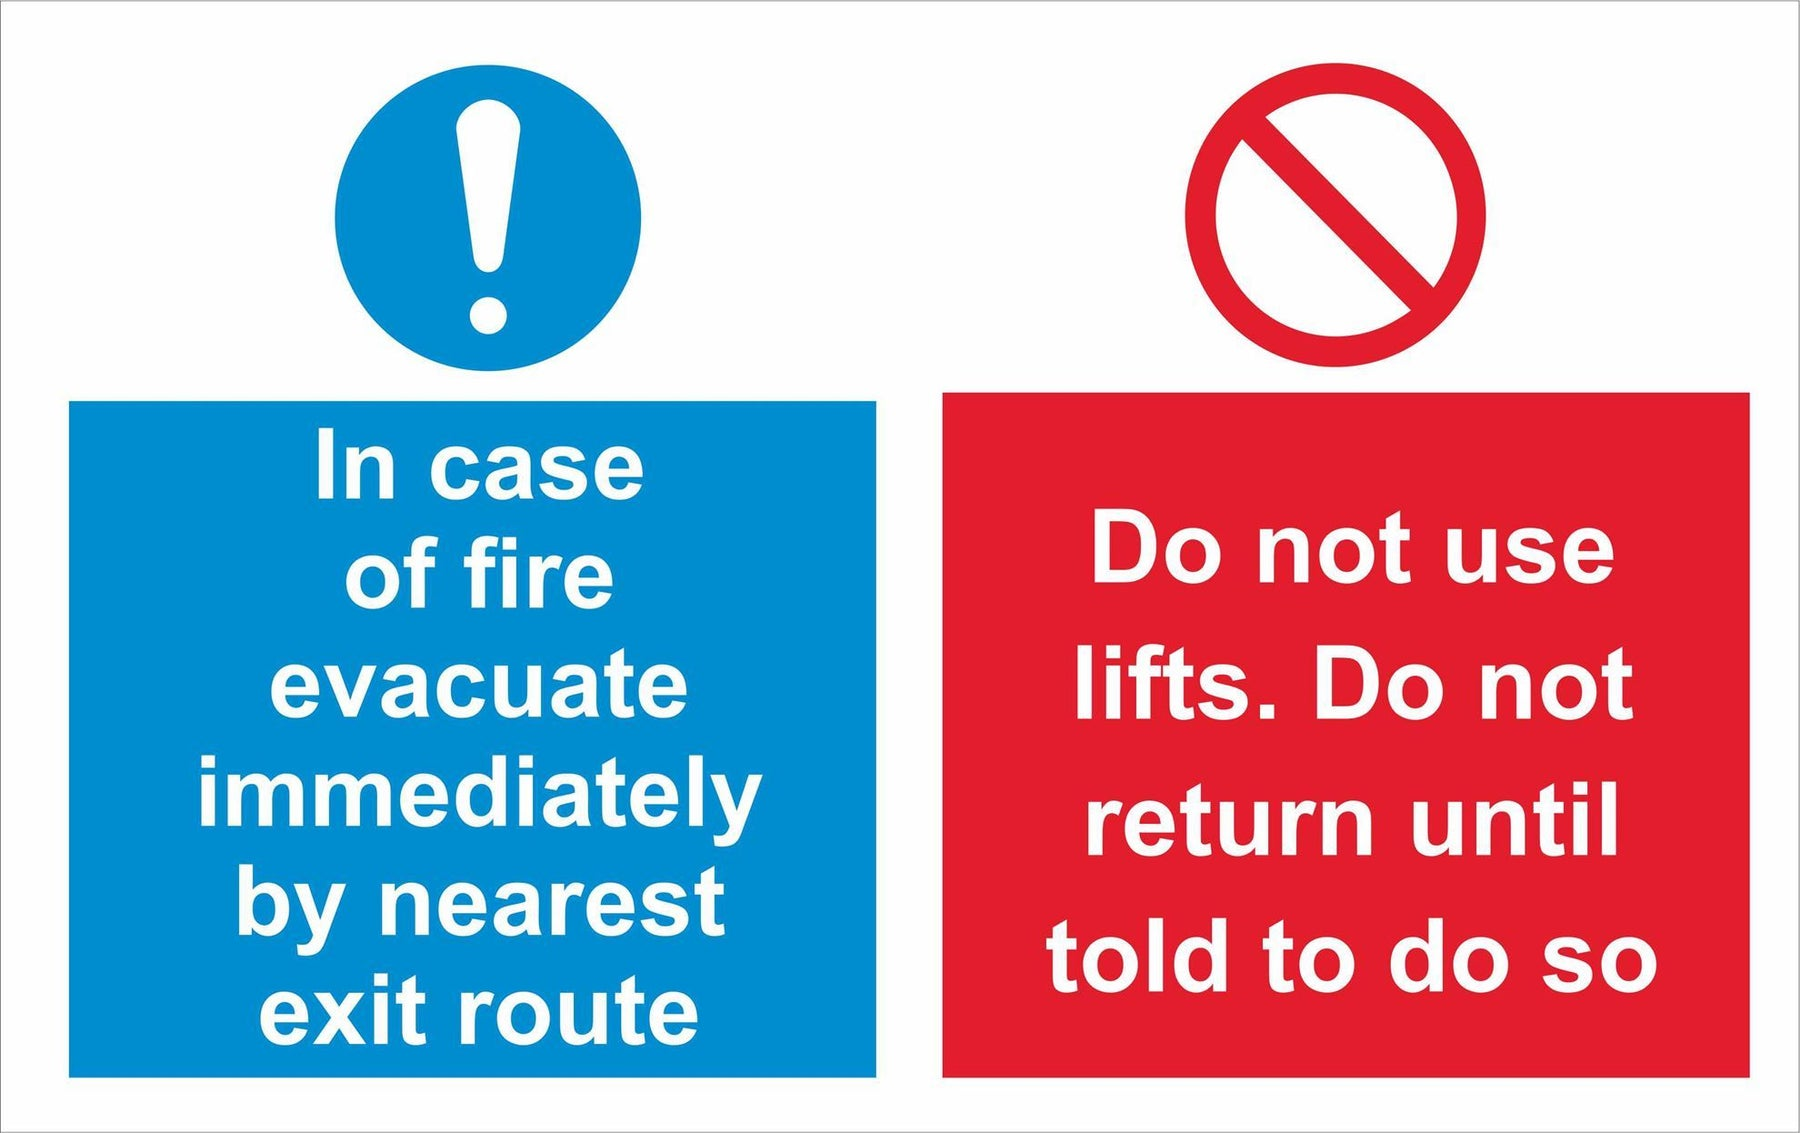 In case of fire evacuate immediately by nearest exit route